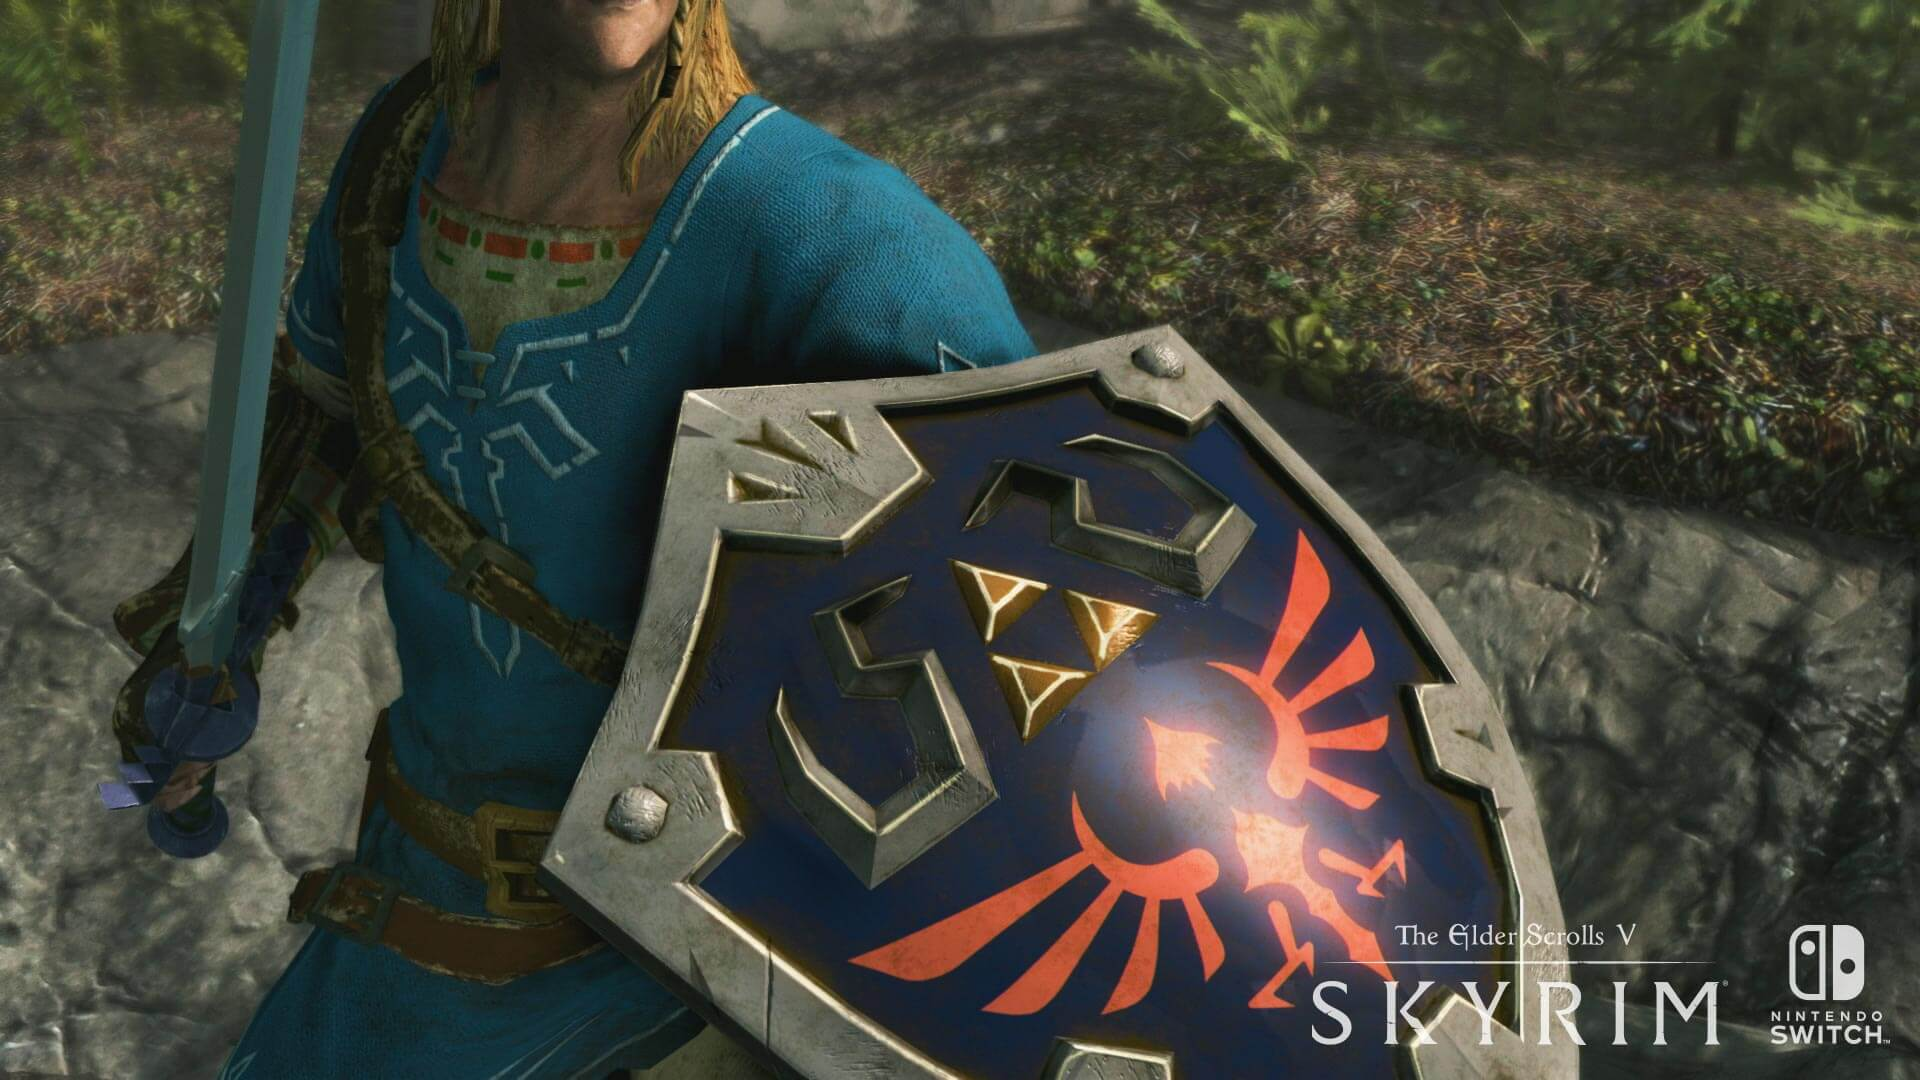 zelda skyrim switch